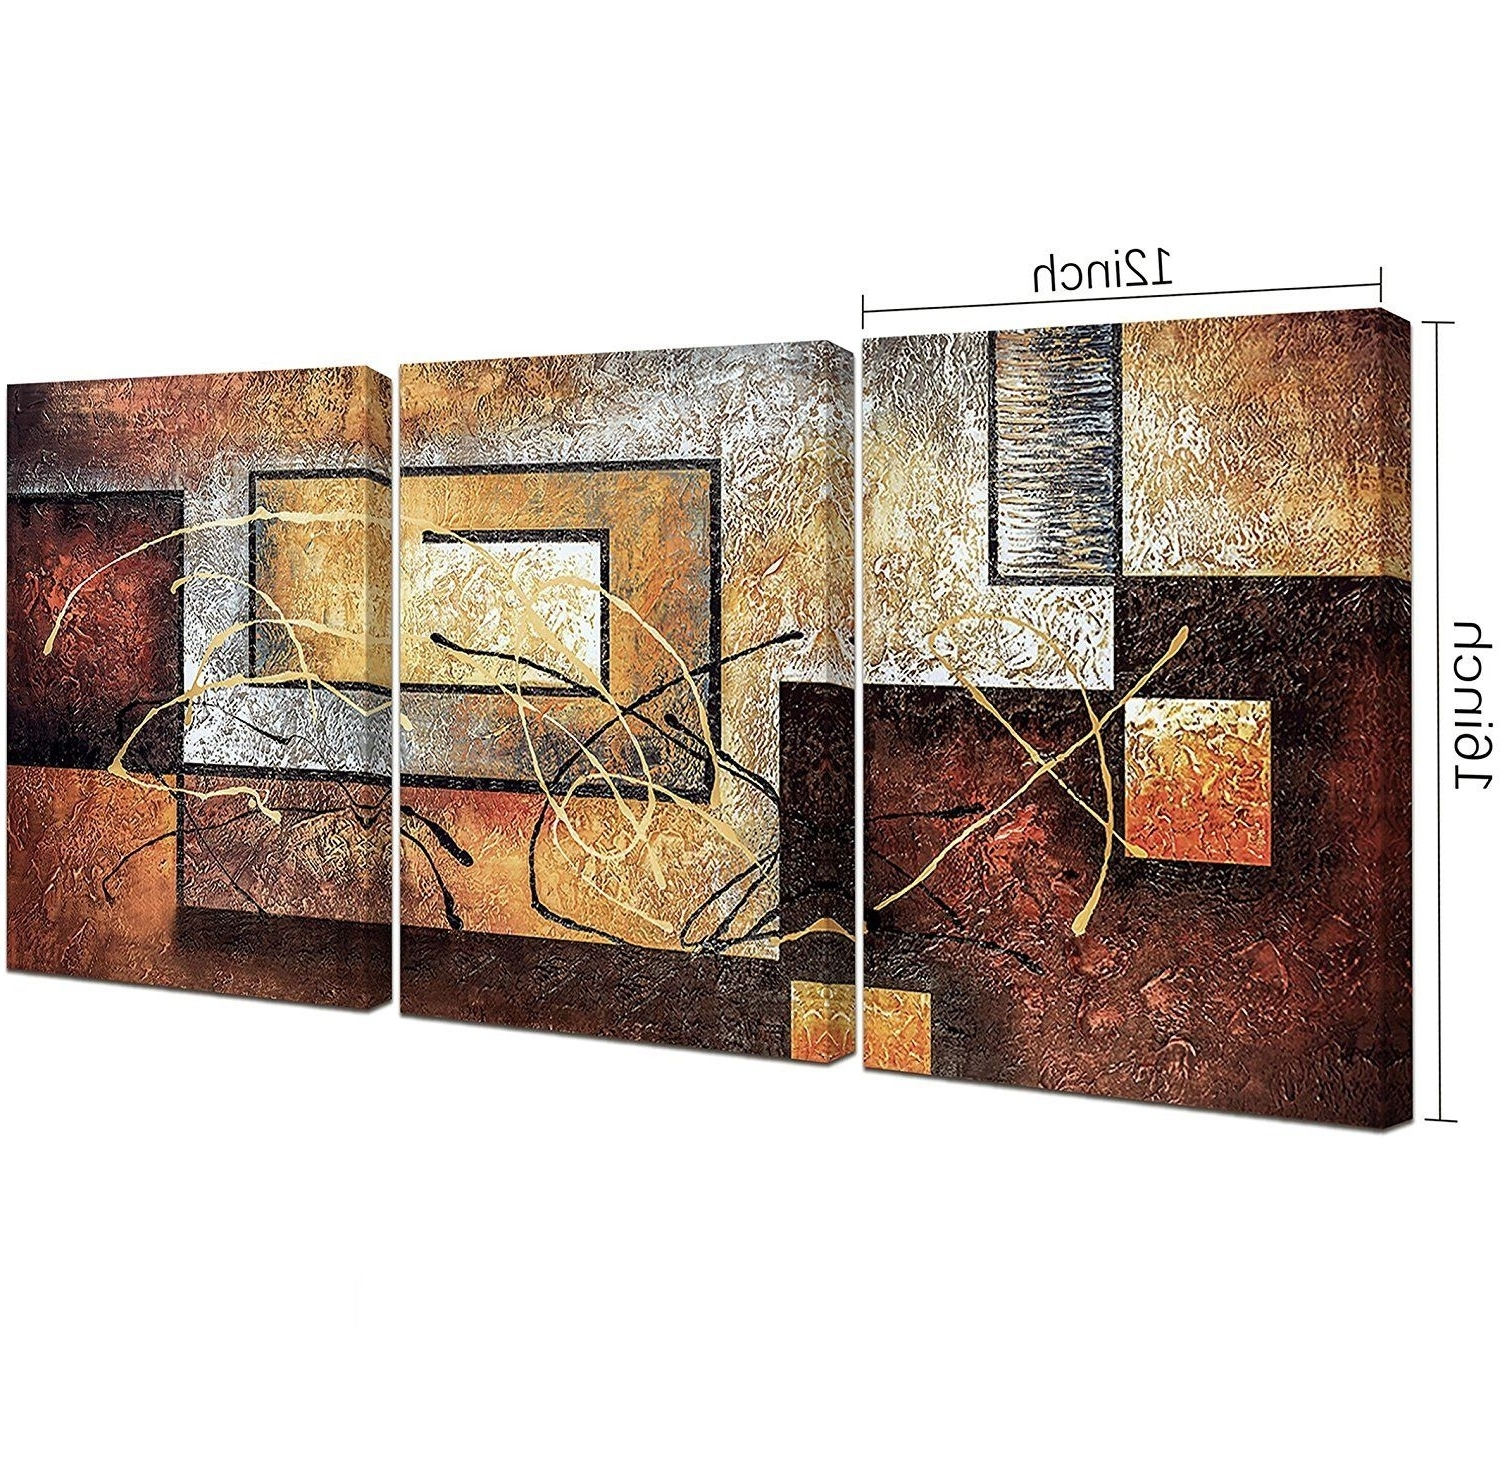 Newest Tile Canvas Wall Art With Canvas Wall Art Decor Paintings 3 Panel Vintage Red Wine Bottle And (View 14 of 15)